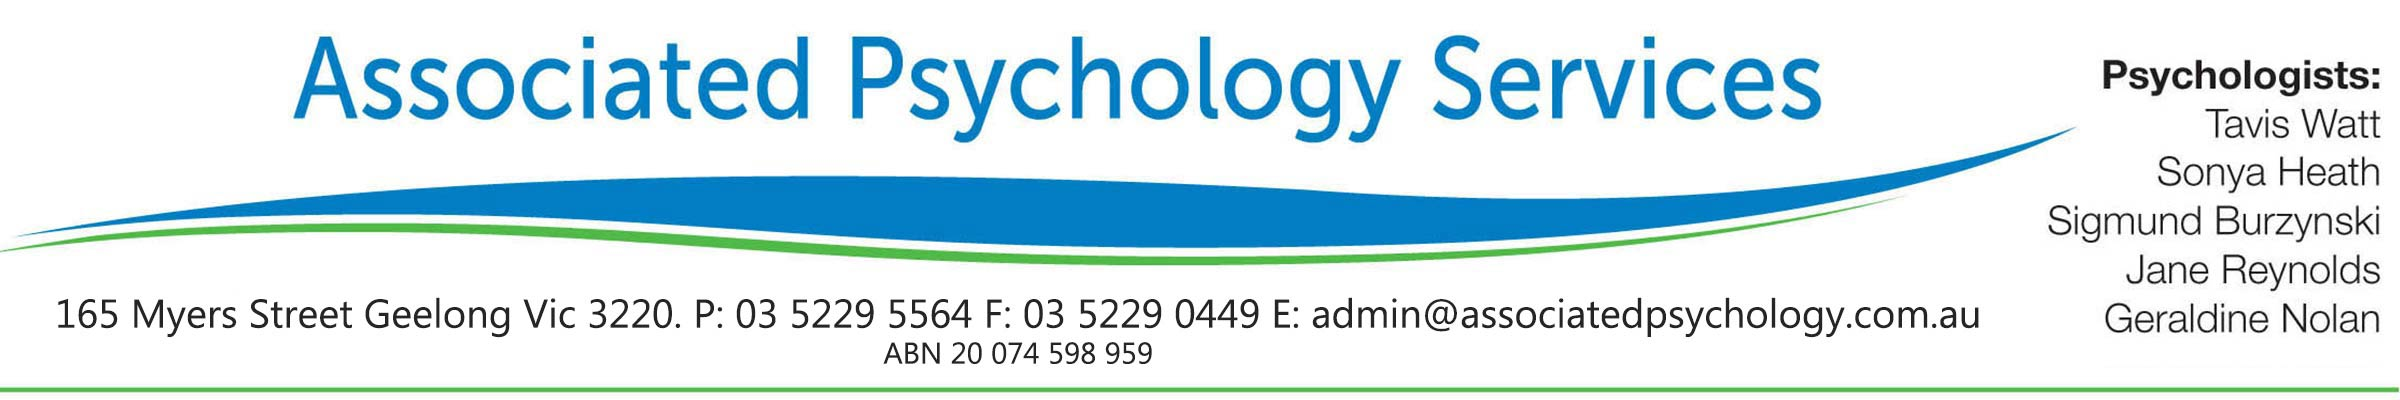 associated psychology services header with logo